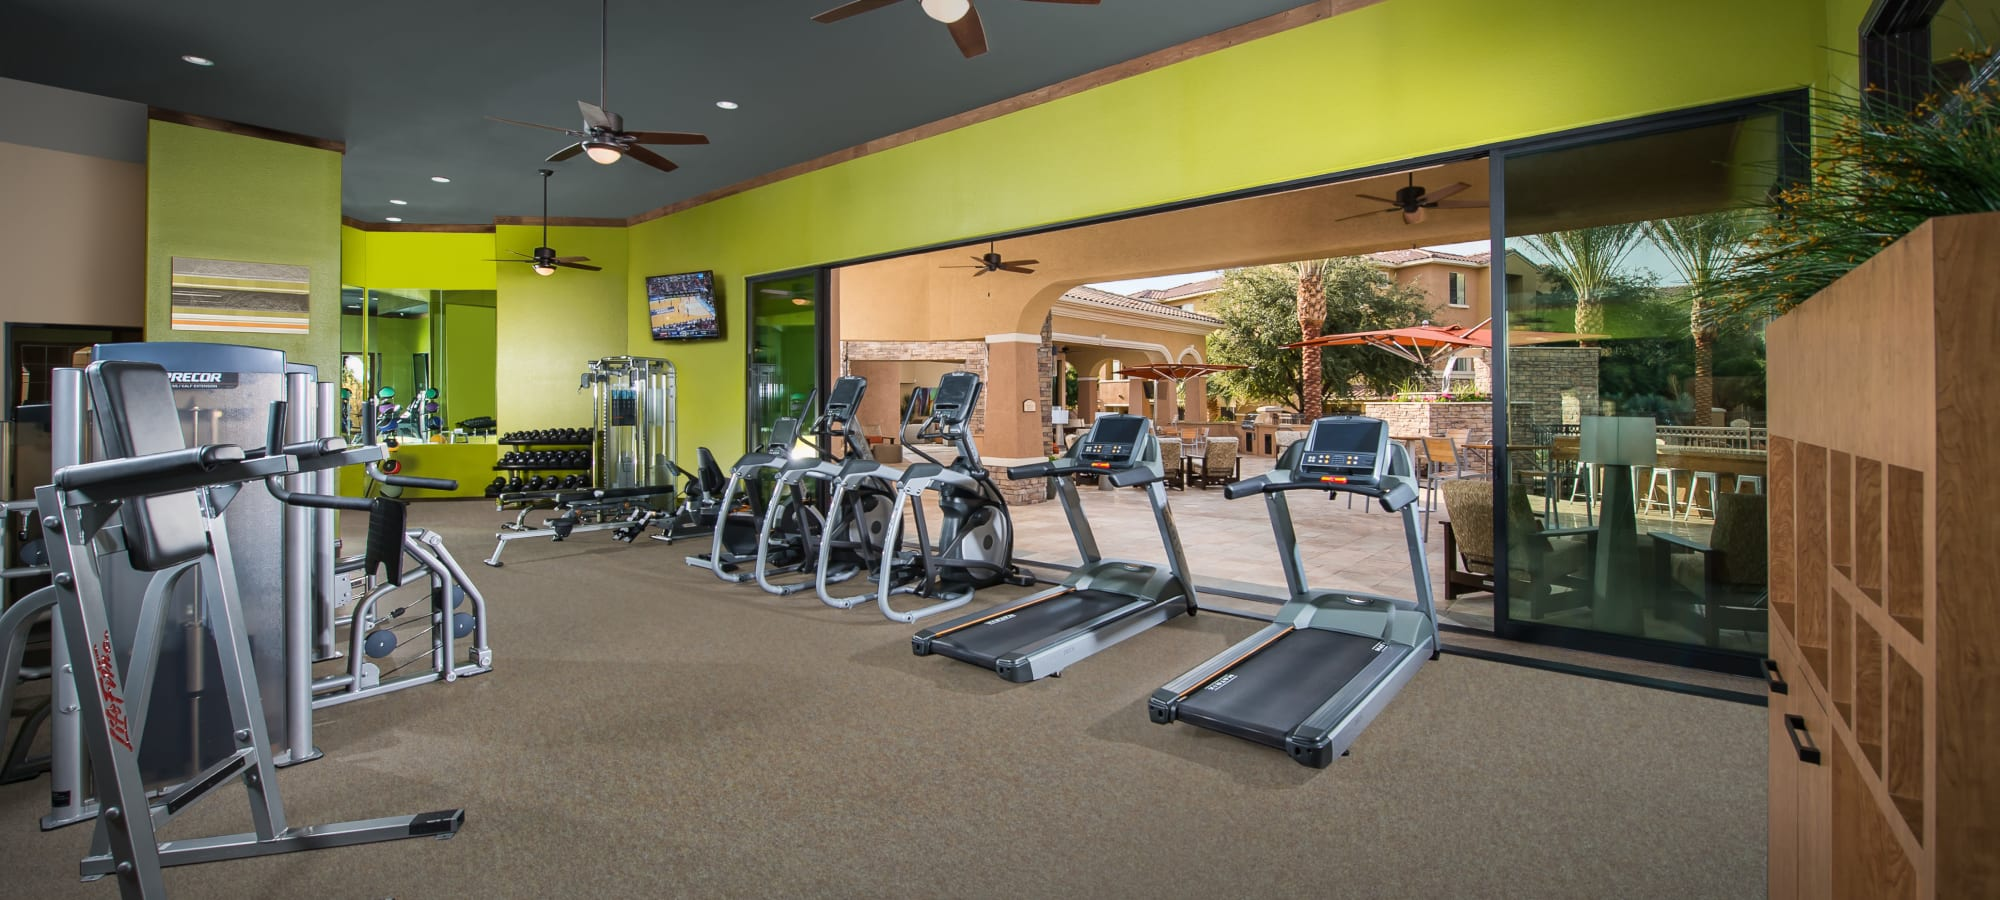 Well-equipped fitness center at Stone Oaks in Chandler, Arizona